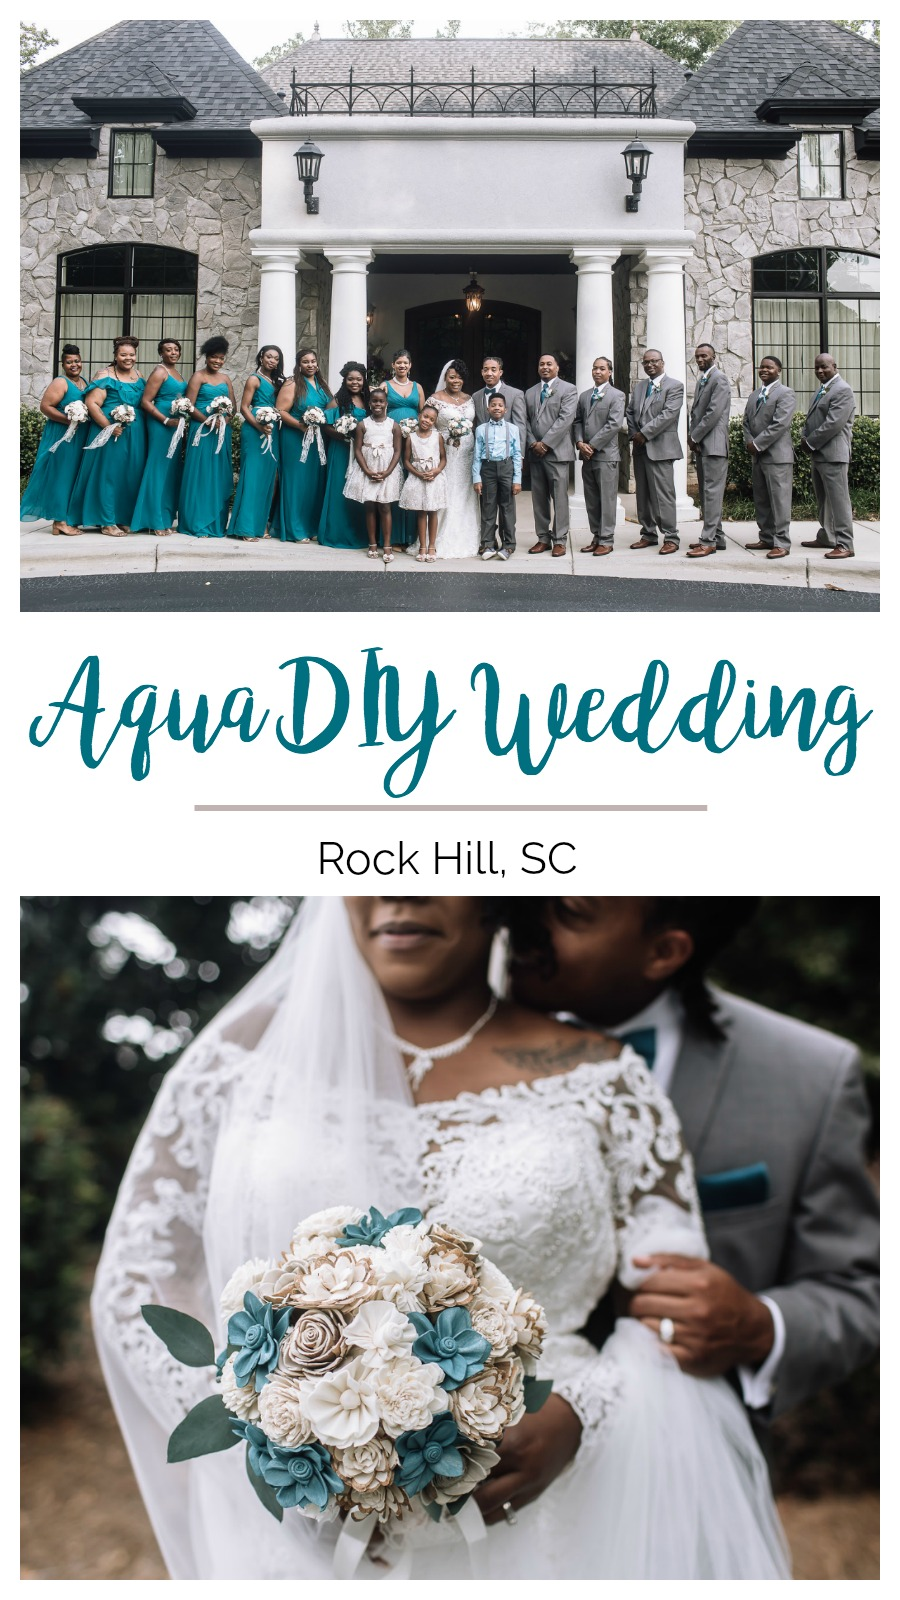 Venah and Louis: Joyous Blended Family Wedding at Breakfield at Riverwalk, Rock Hill, South Carolina   Palmetto State Weddings   Amanda Moss Photography   classic Southern wedding   aqua wedding   DIY wooden bouquet